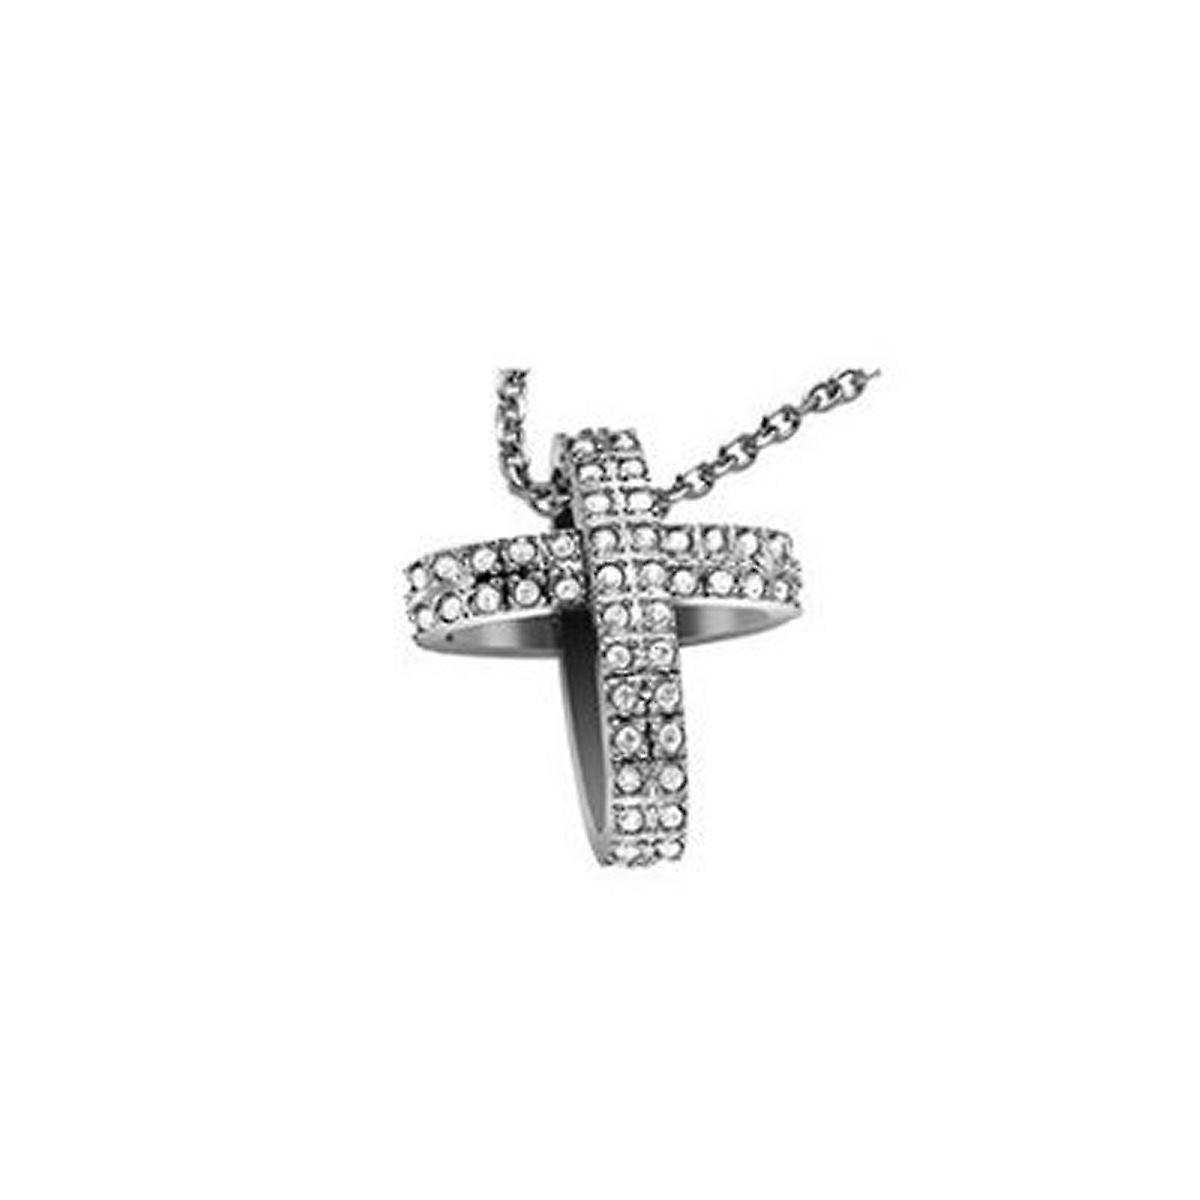 Breil ladies chain necklace stainless steel cross big TJ1463